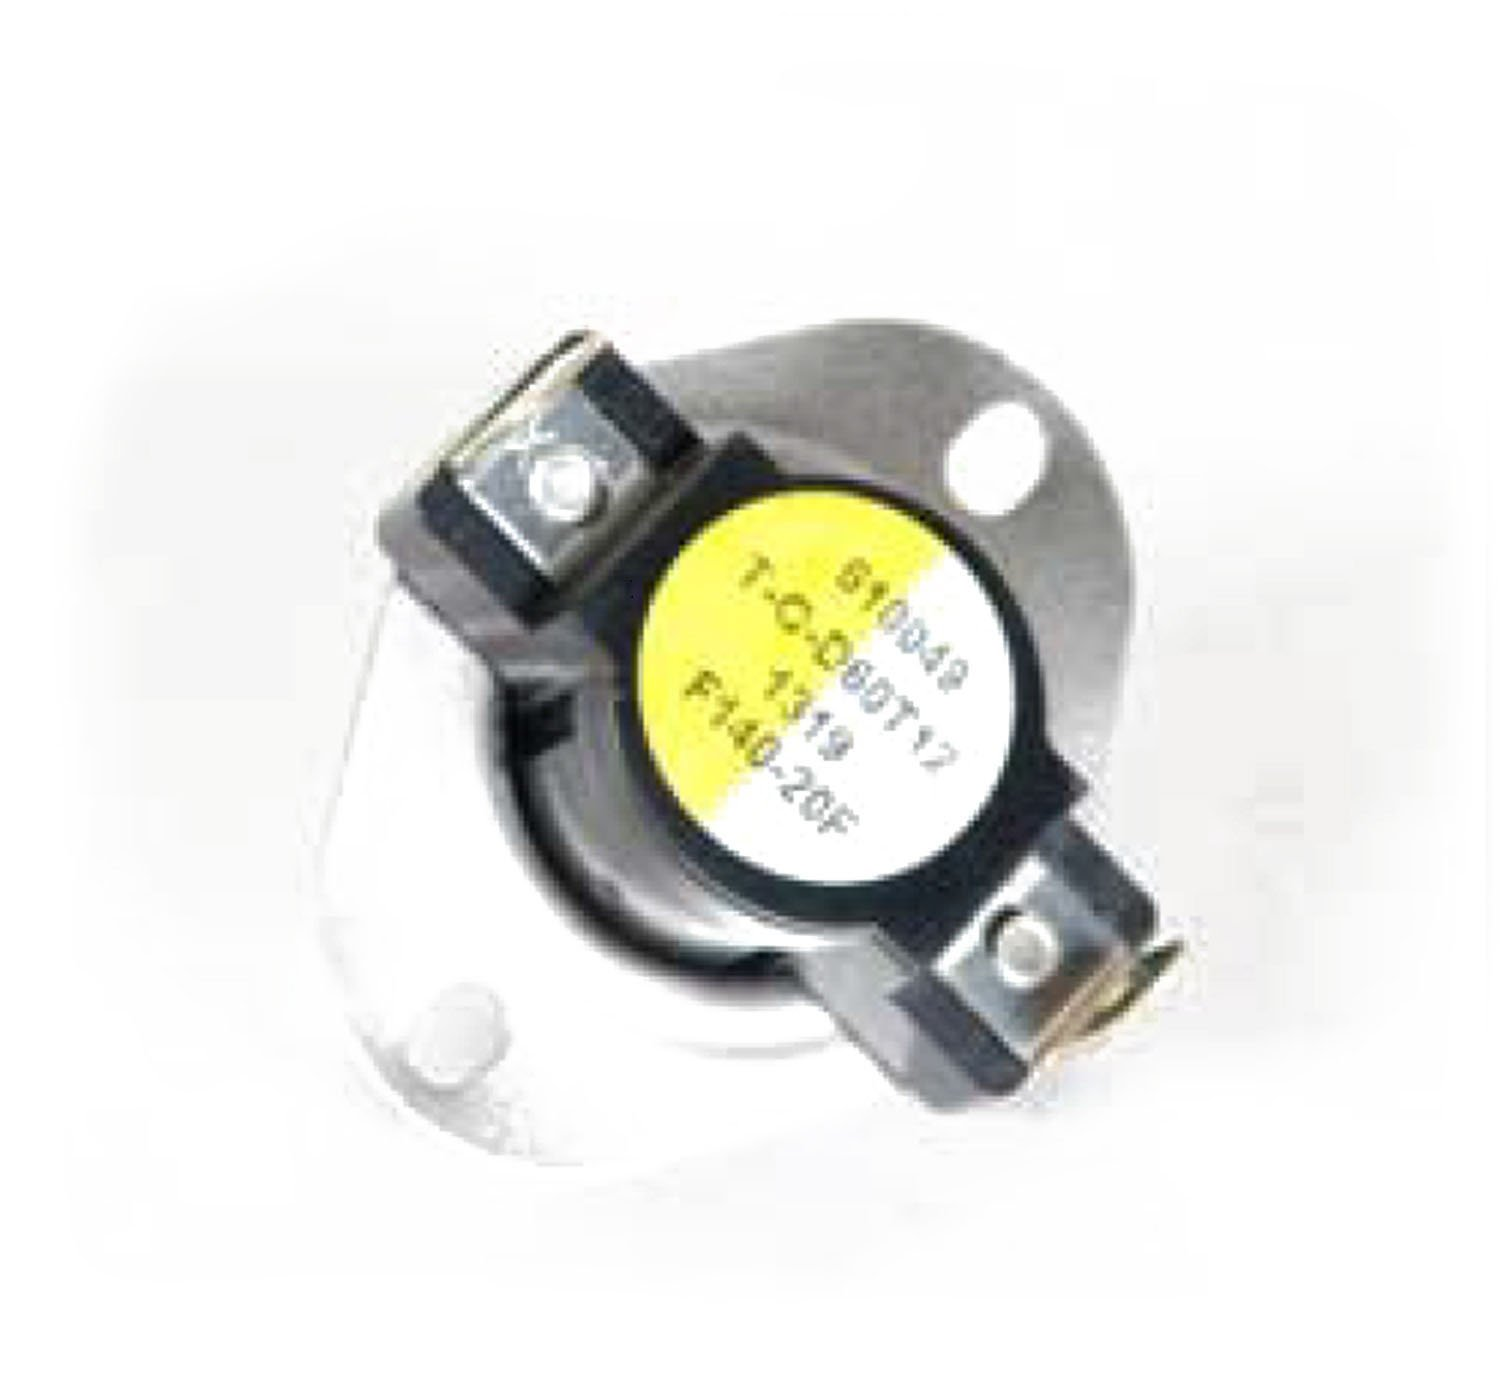 Lennox Gas and Pellet Convection Blower Snap Switch Sensor H5875